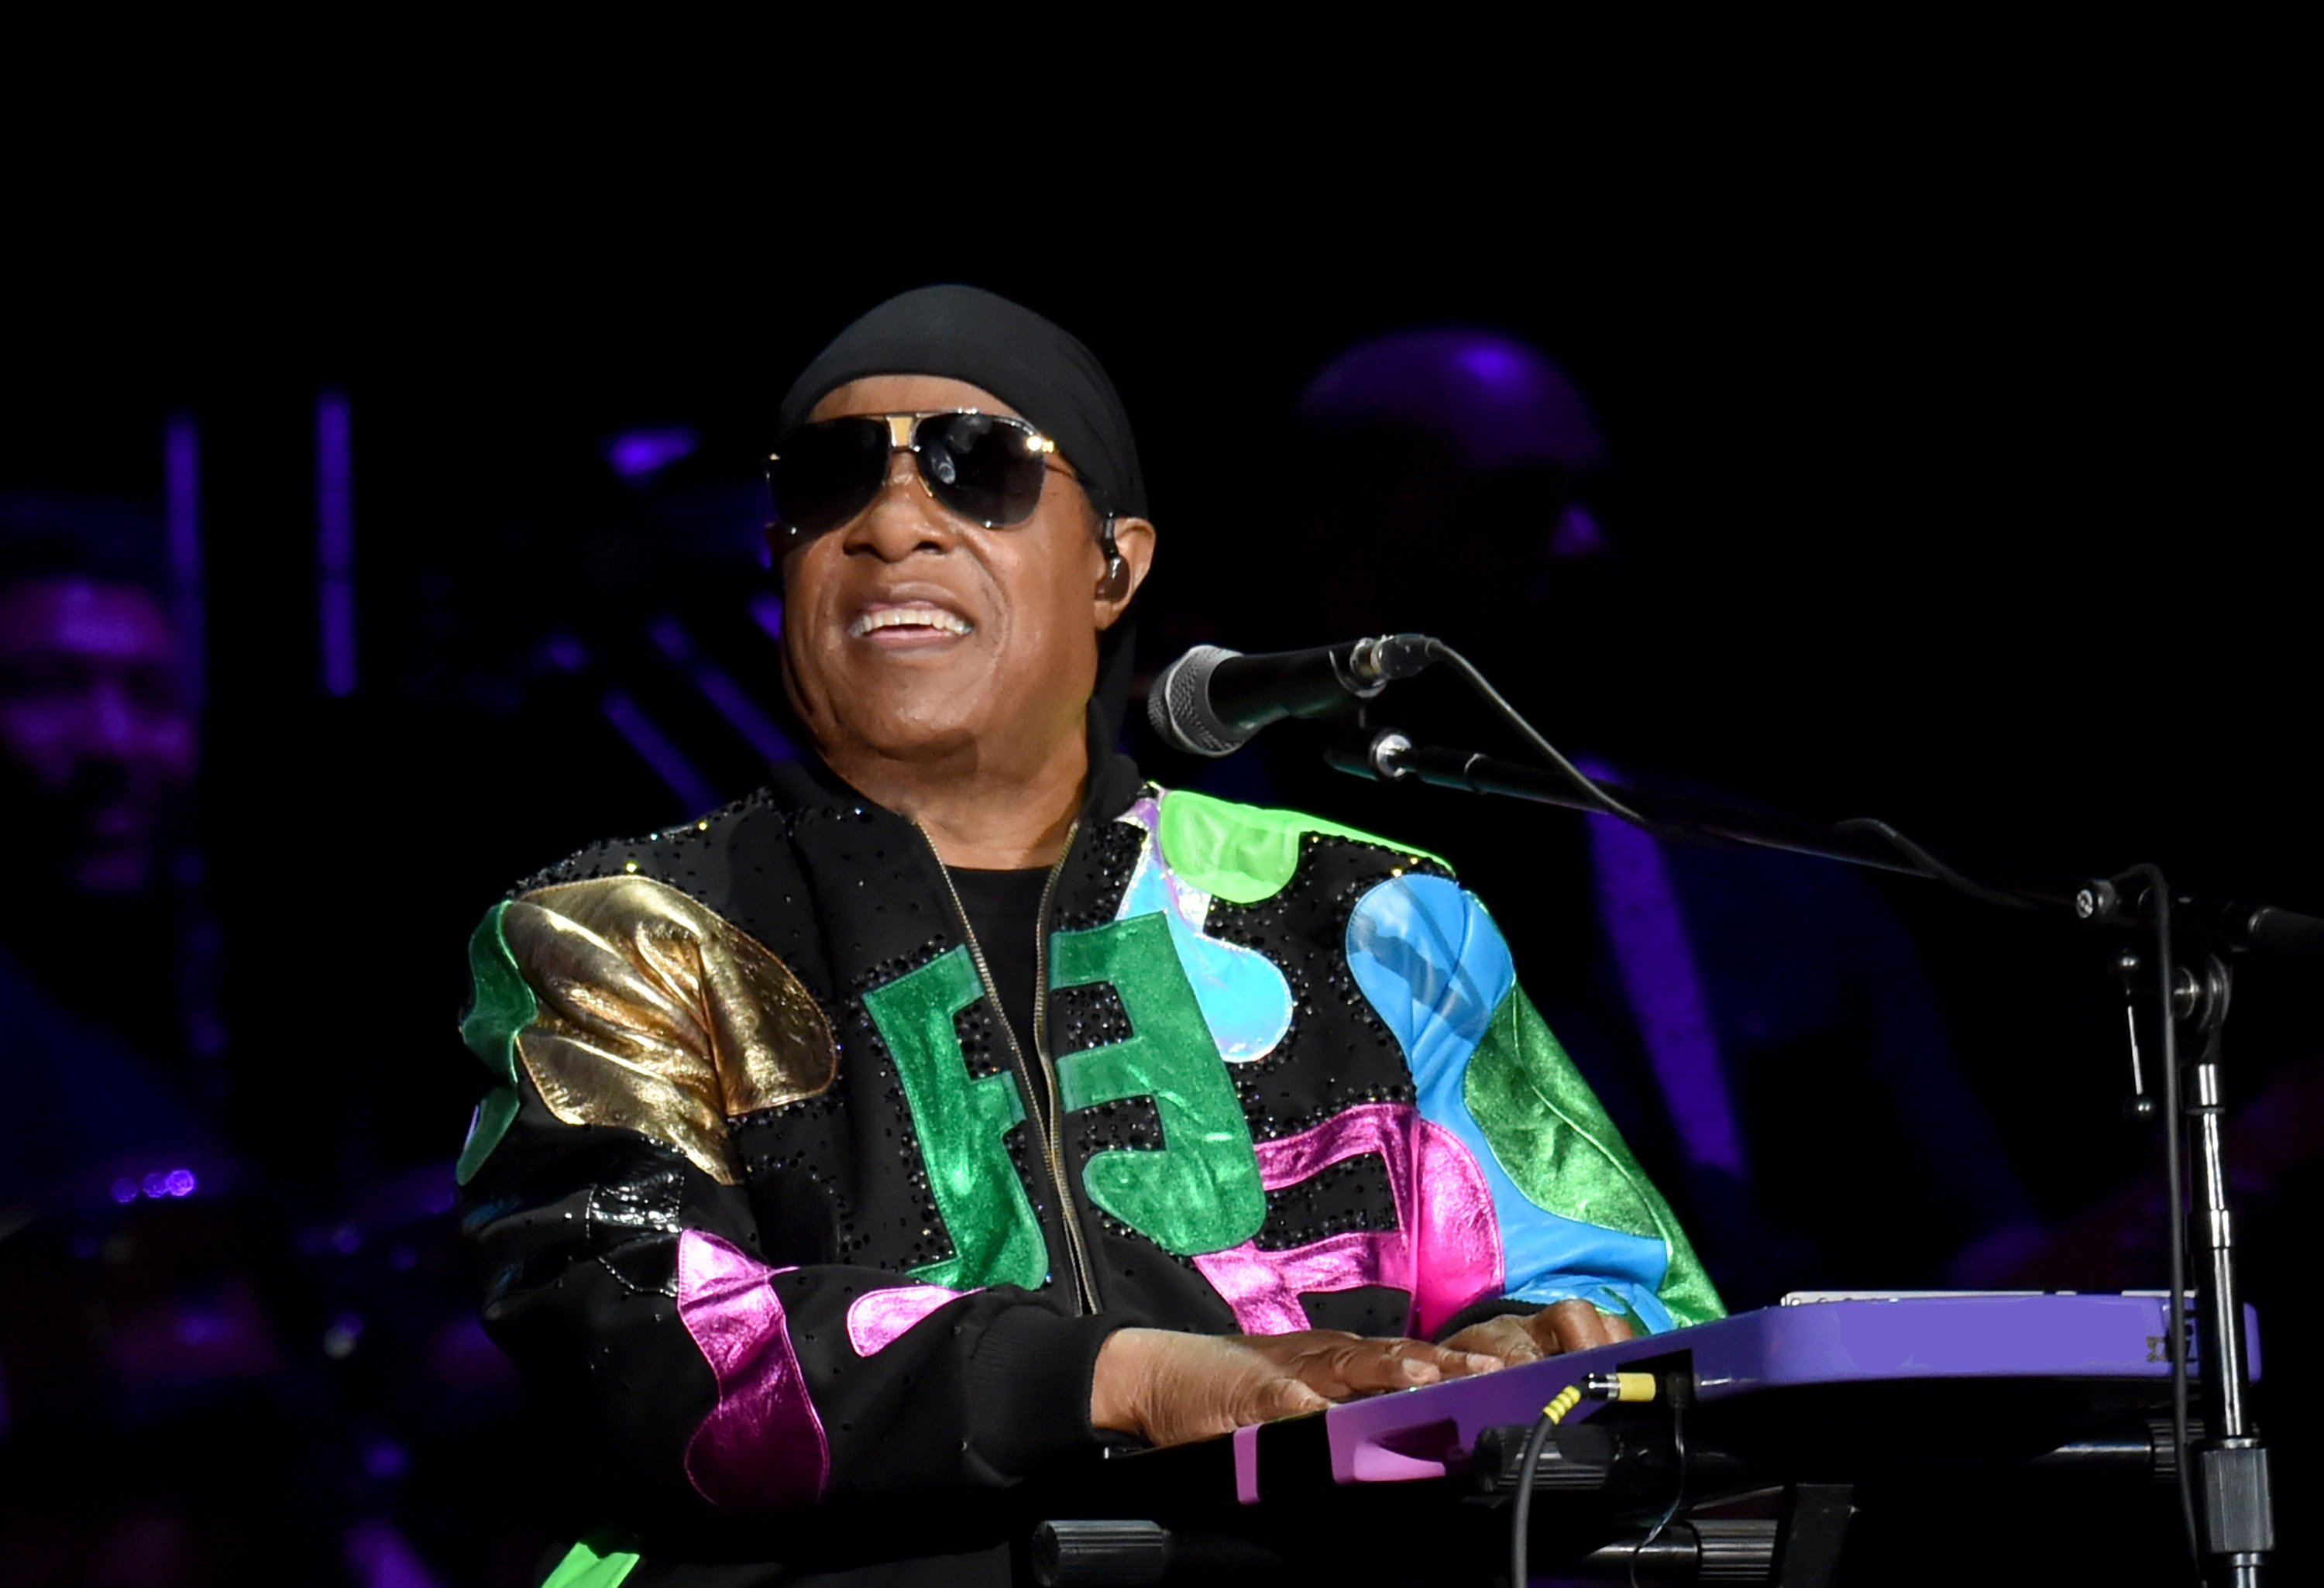 Stevie Wonder at the British Summer Time Hyde Park concert in 2019 in London, England. | Photo: Getty Images